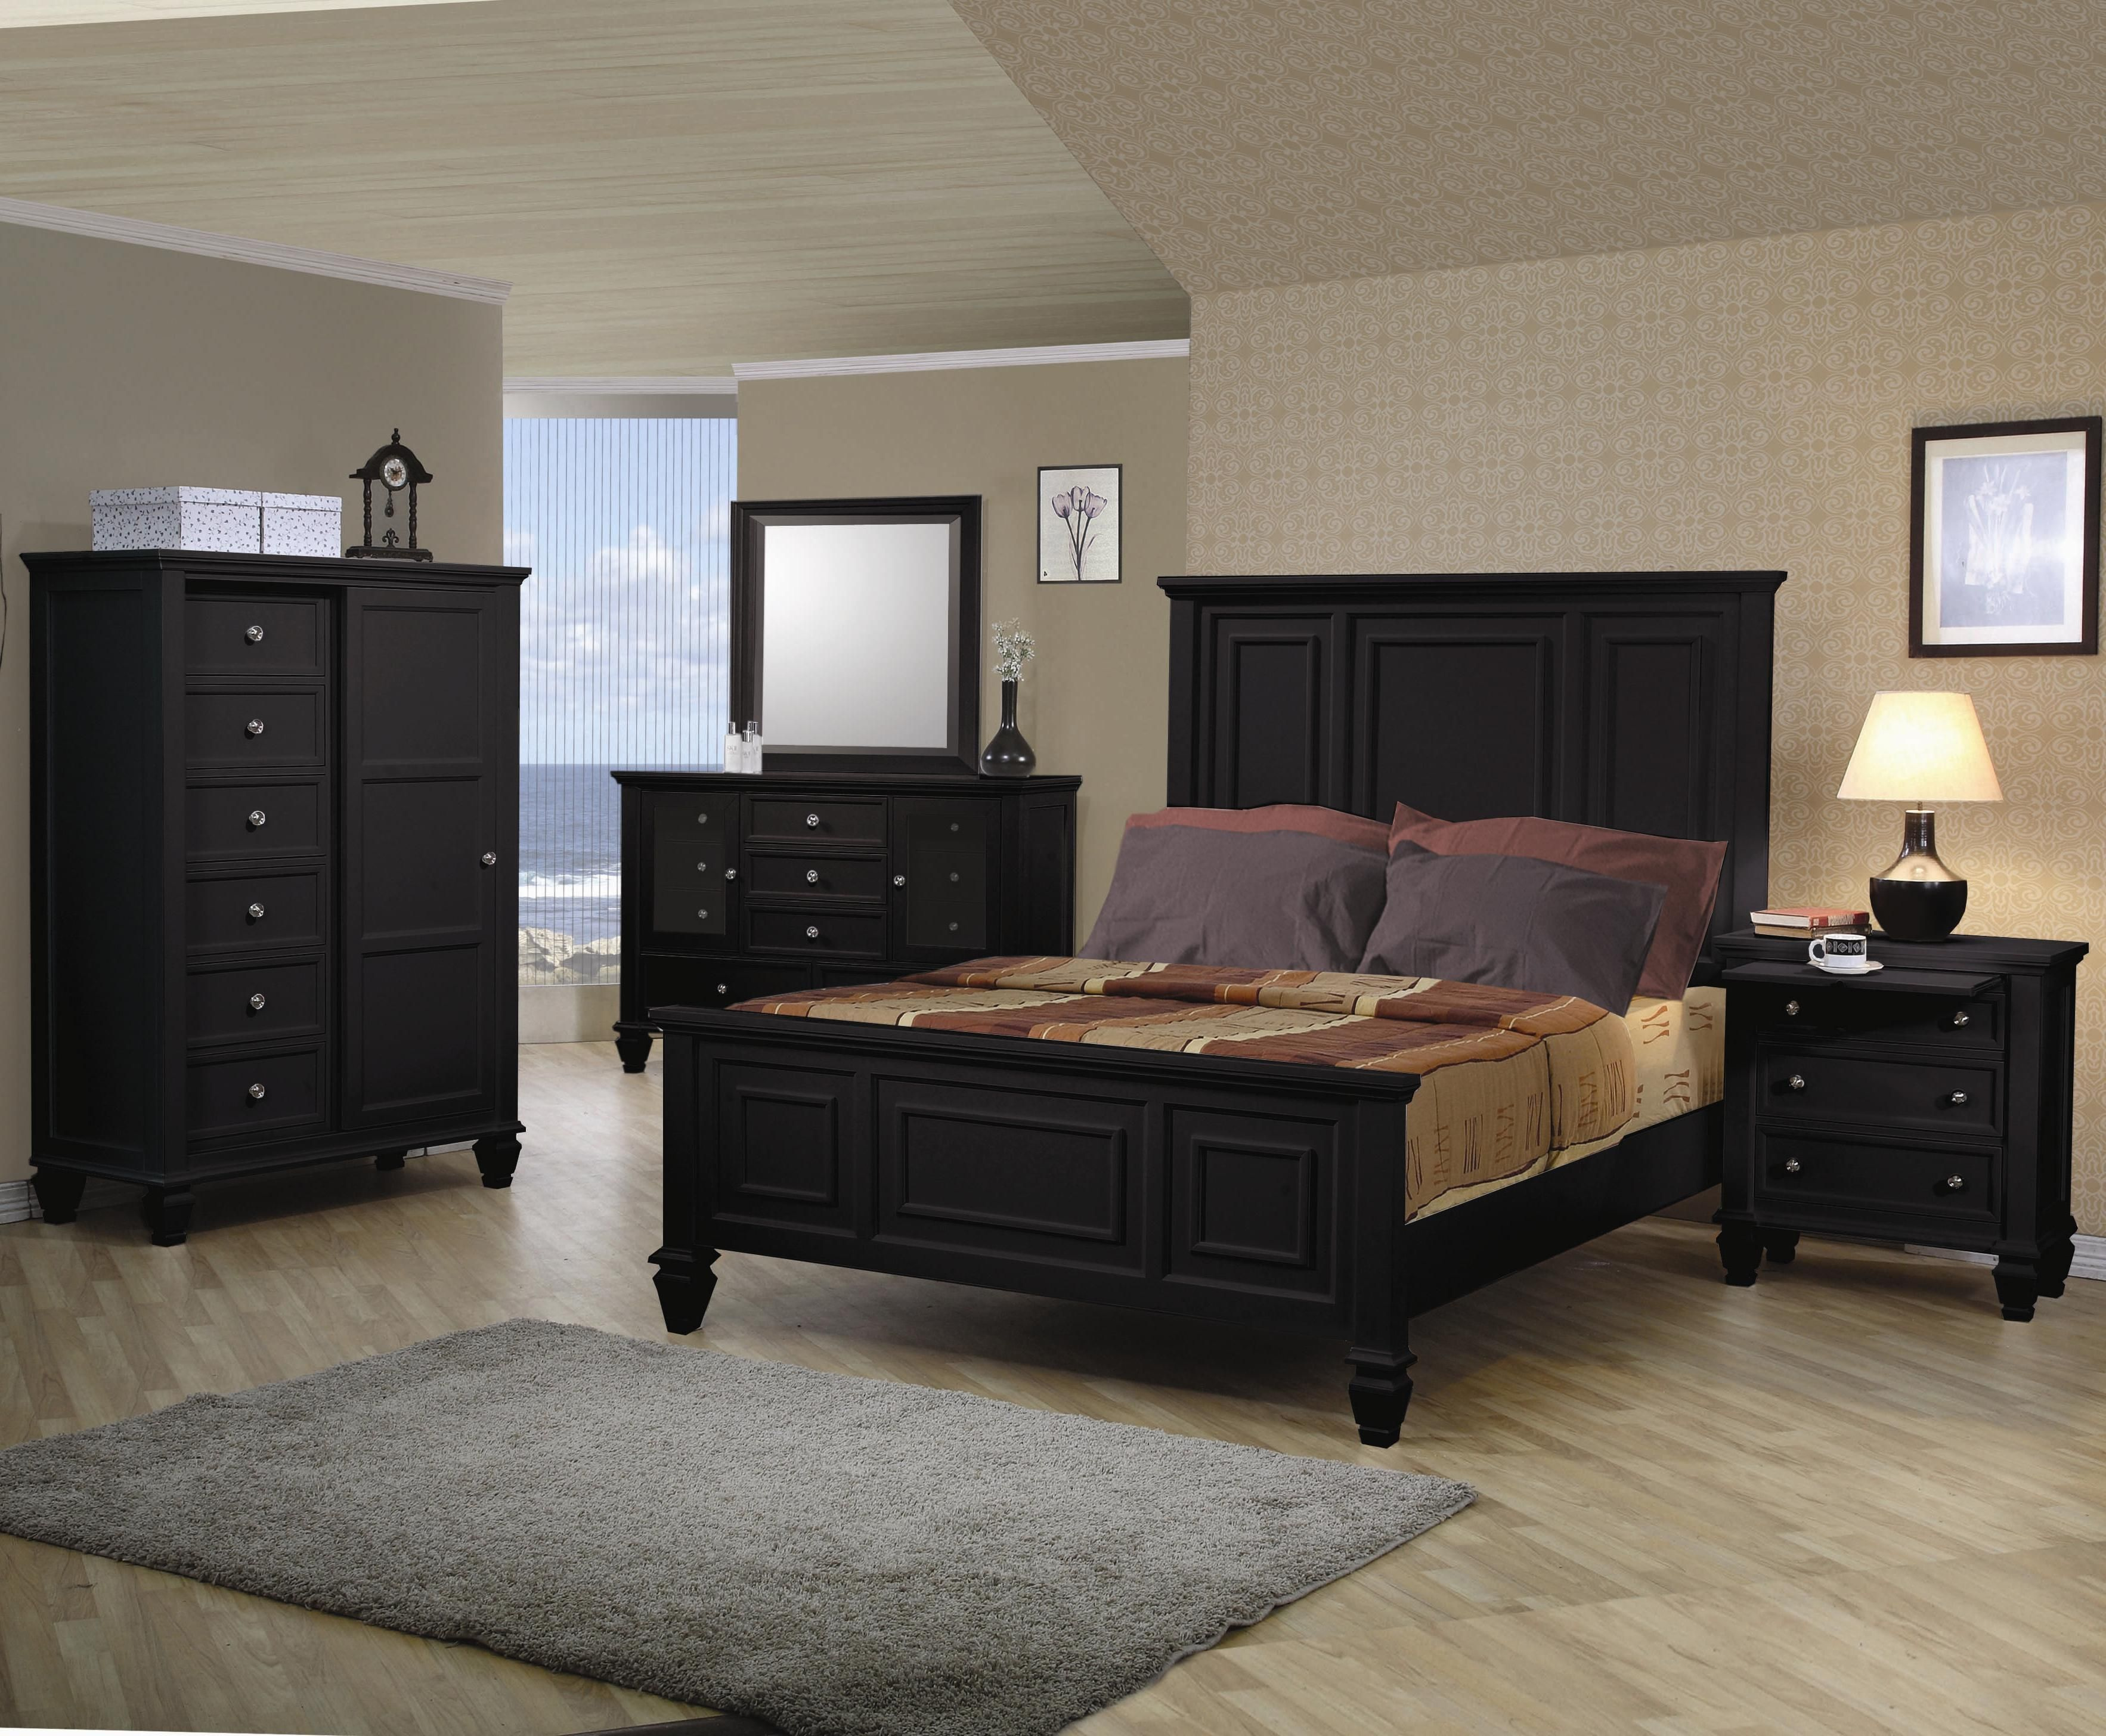 sandy beach bedroom collection bed available in queen or king